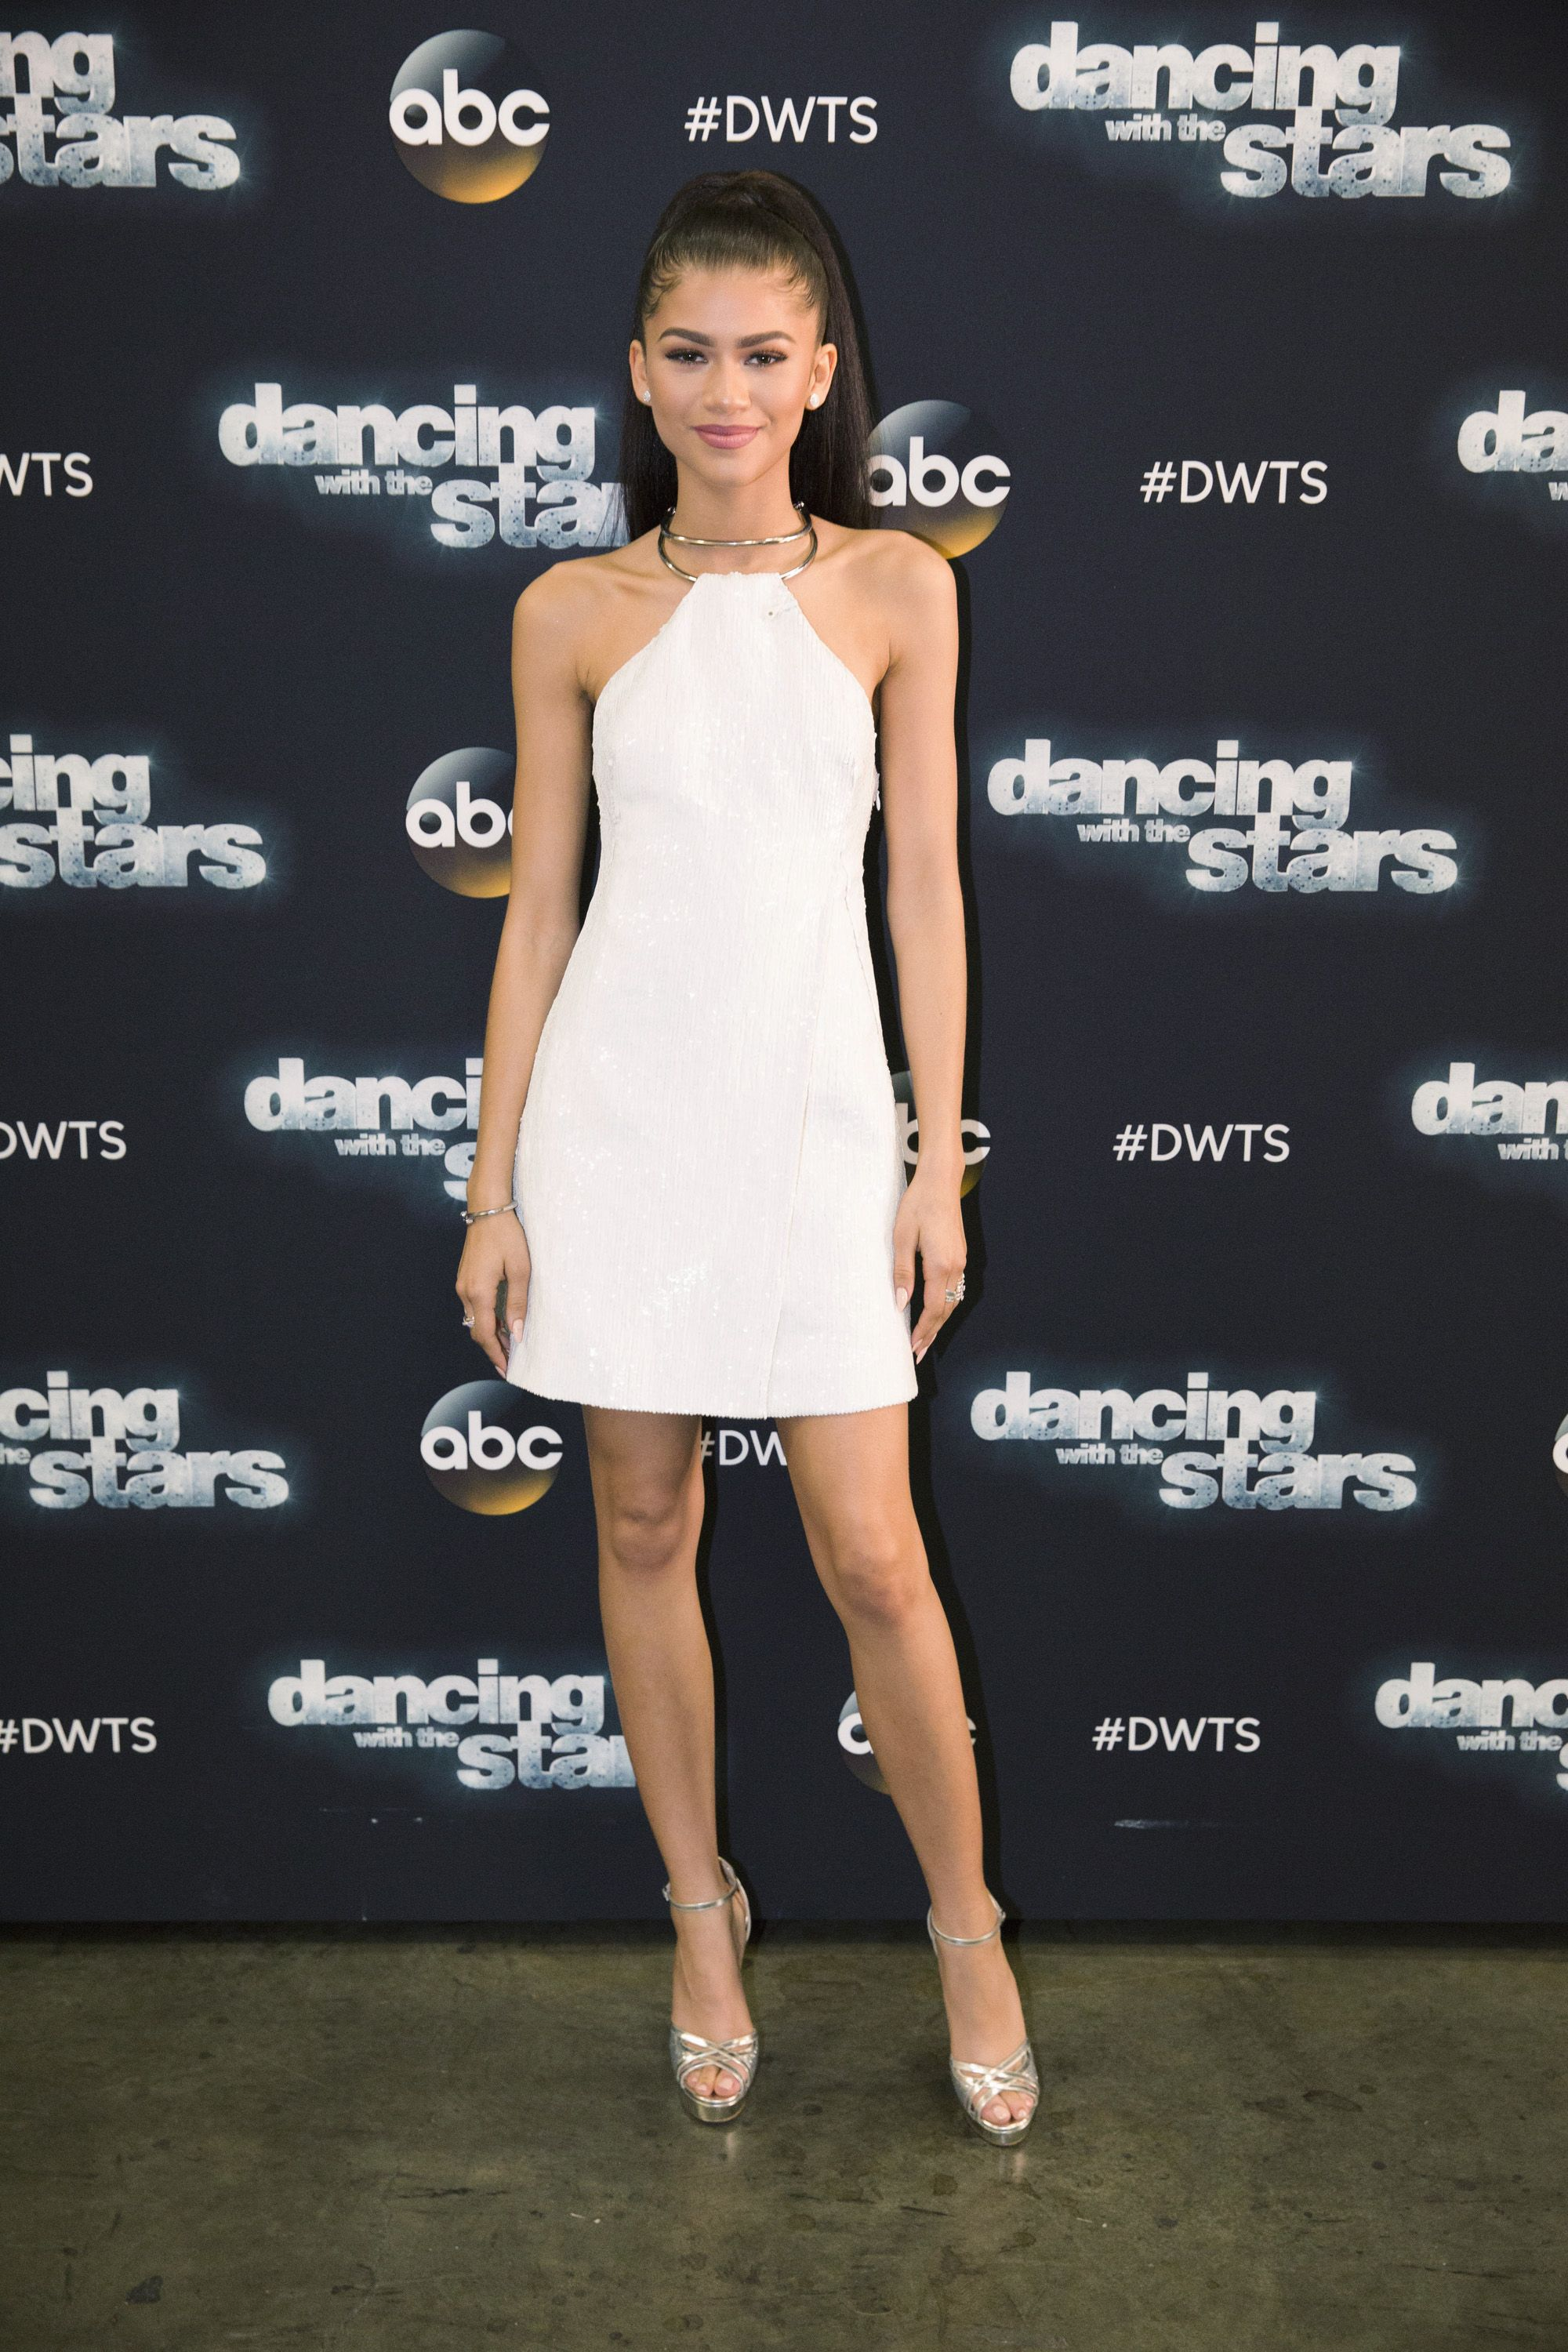 "<p>Who: Zendaya</p><p>When: April 11, 2016</p><p>Why: Zendaya returned to <em>Dancing with the Stars</em> this week—this time as a guest judge—in a look so good <a href=""https://twitter.com/Zendaya/status/719673234216599552?ref_src=twsrc%5Etfw"" target=""_blank"">she needed pliers to get it on.</a></p>"